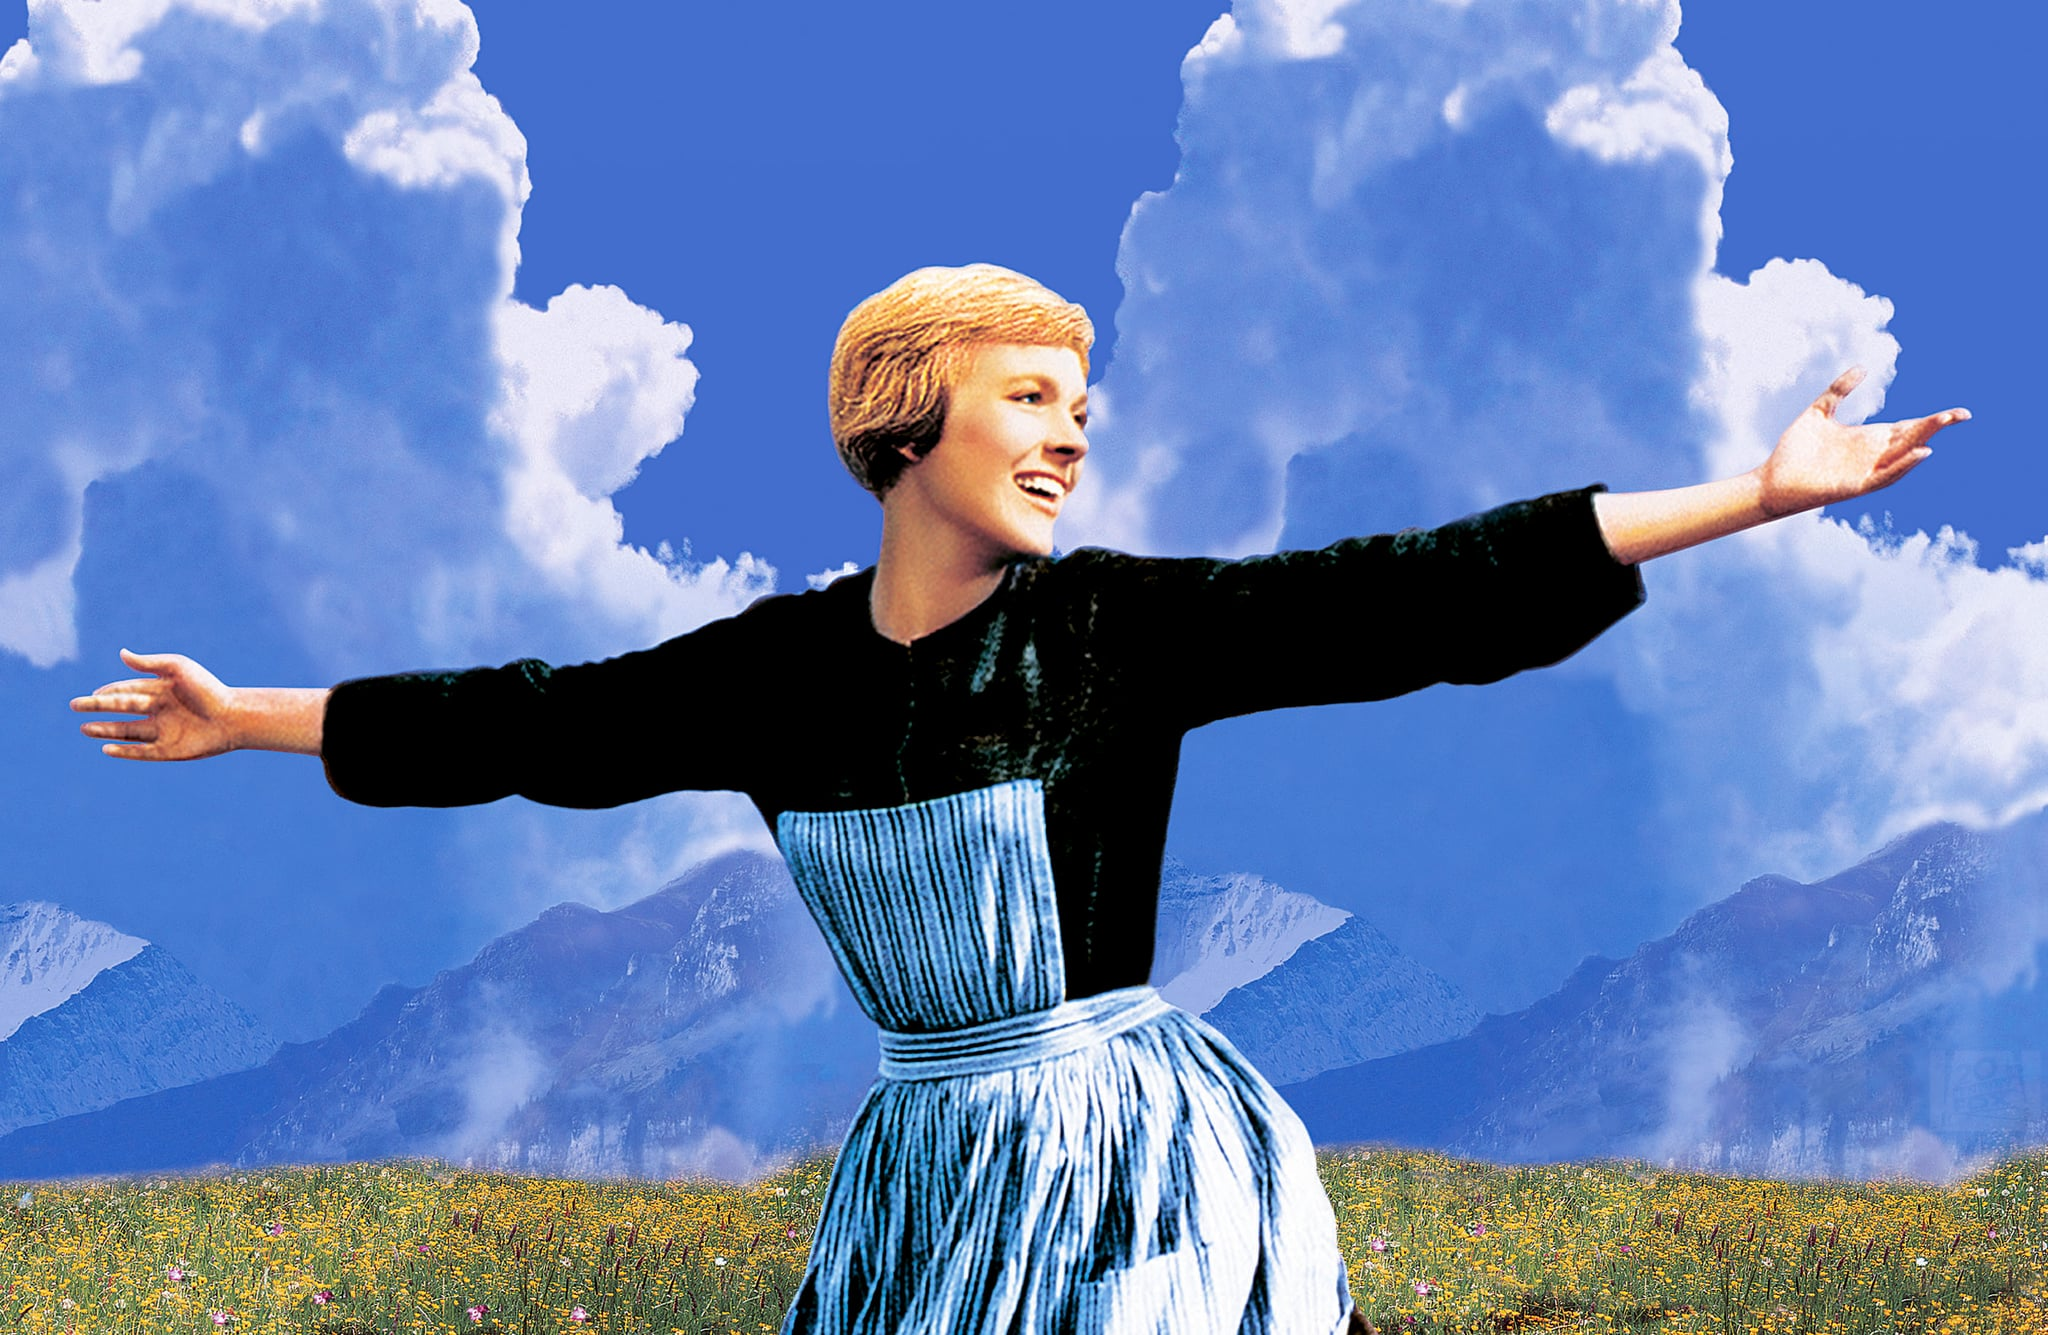 THE SOUND OF MUSIC, Julie Andrews, 1965. TM and Copyright  20th Century Fox Film Corp. All rights reserved. Courtesy: Everett Collection.